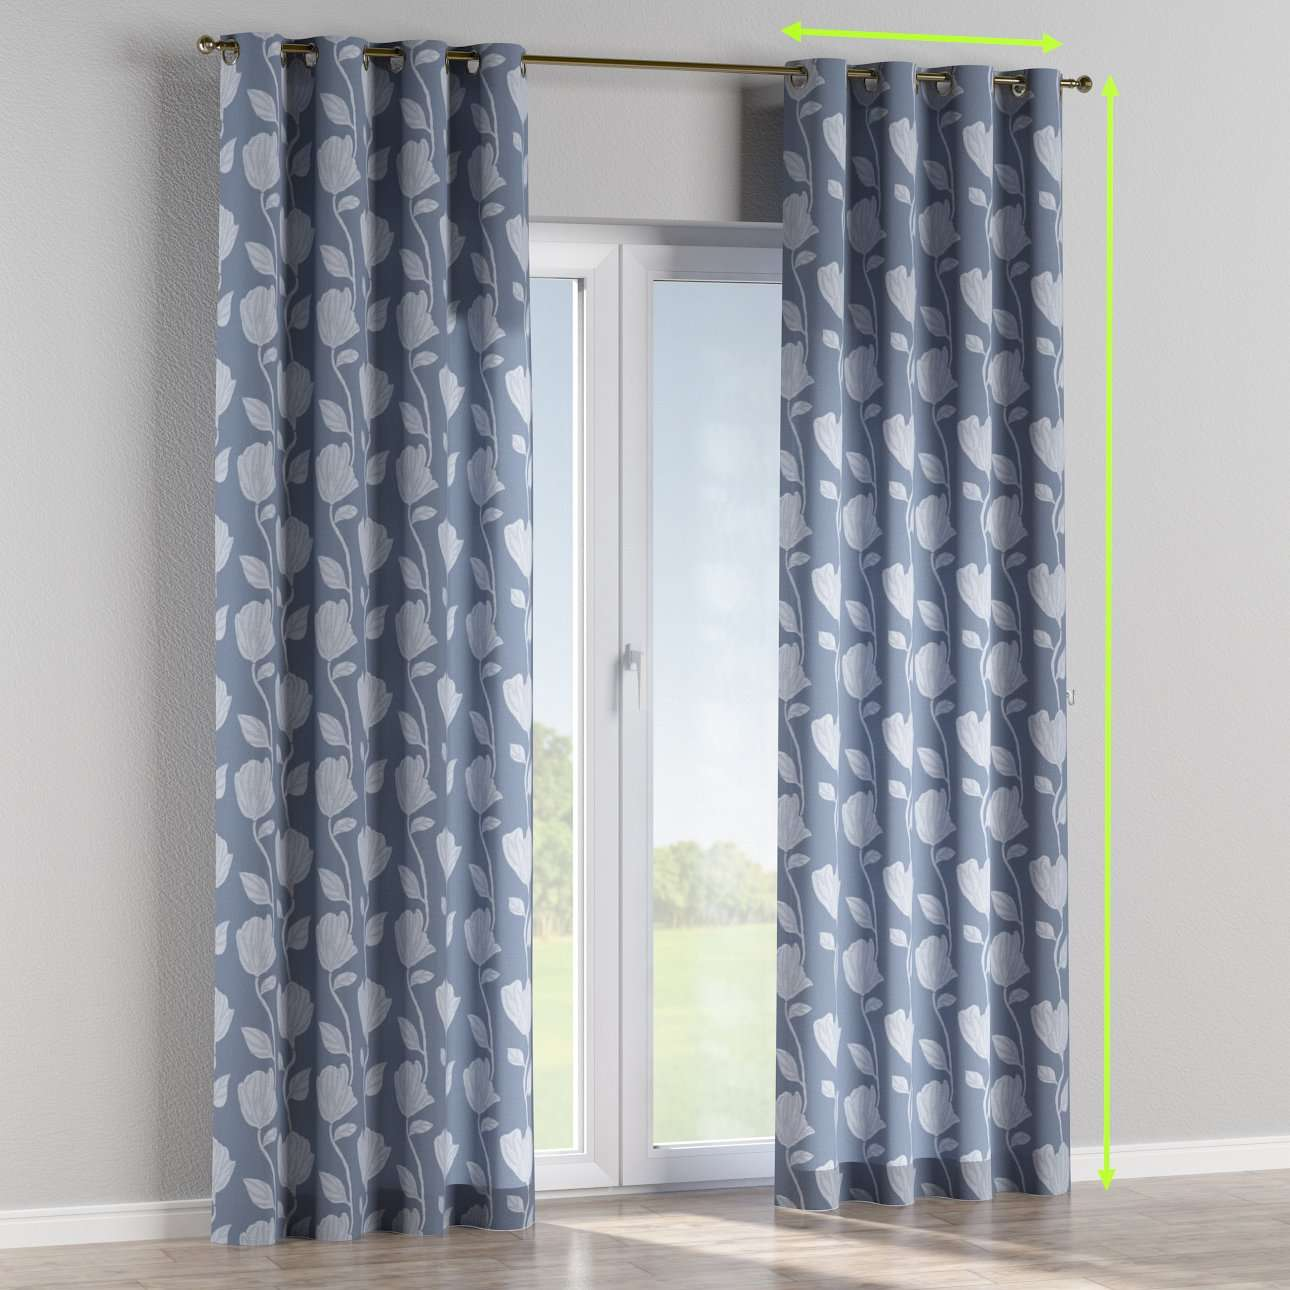 Eyelet curtains in collection Venice, fabric: 140-61